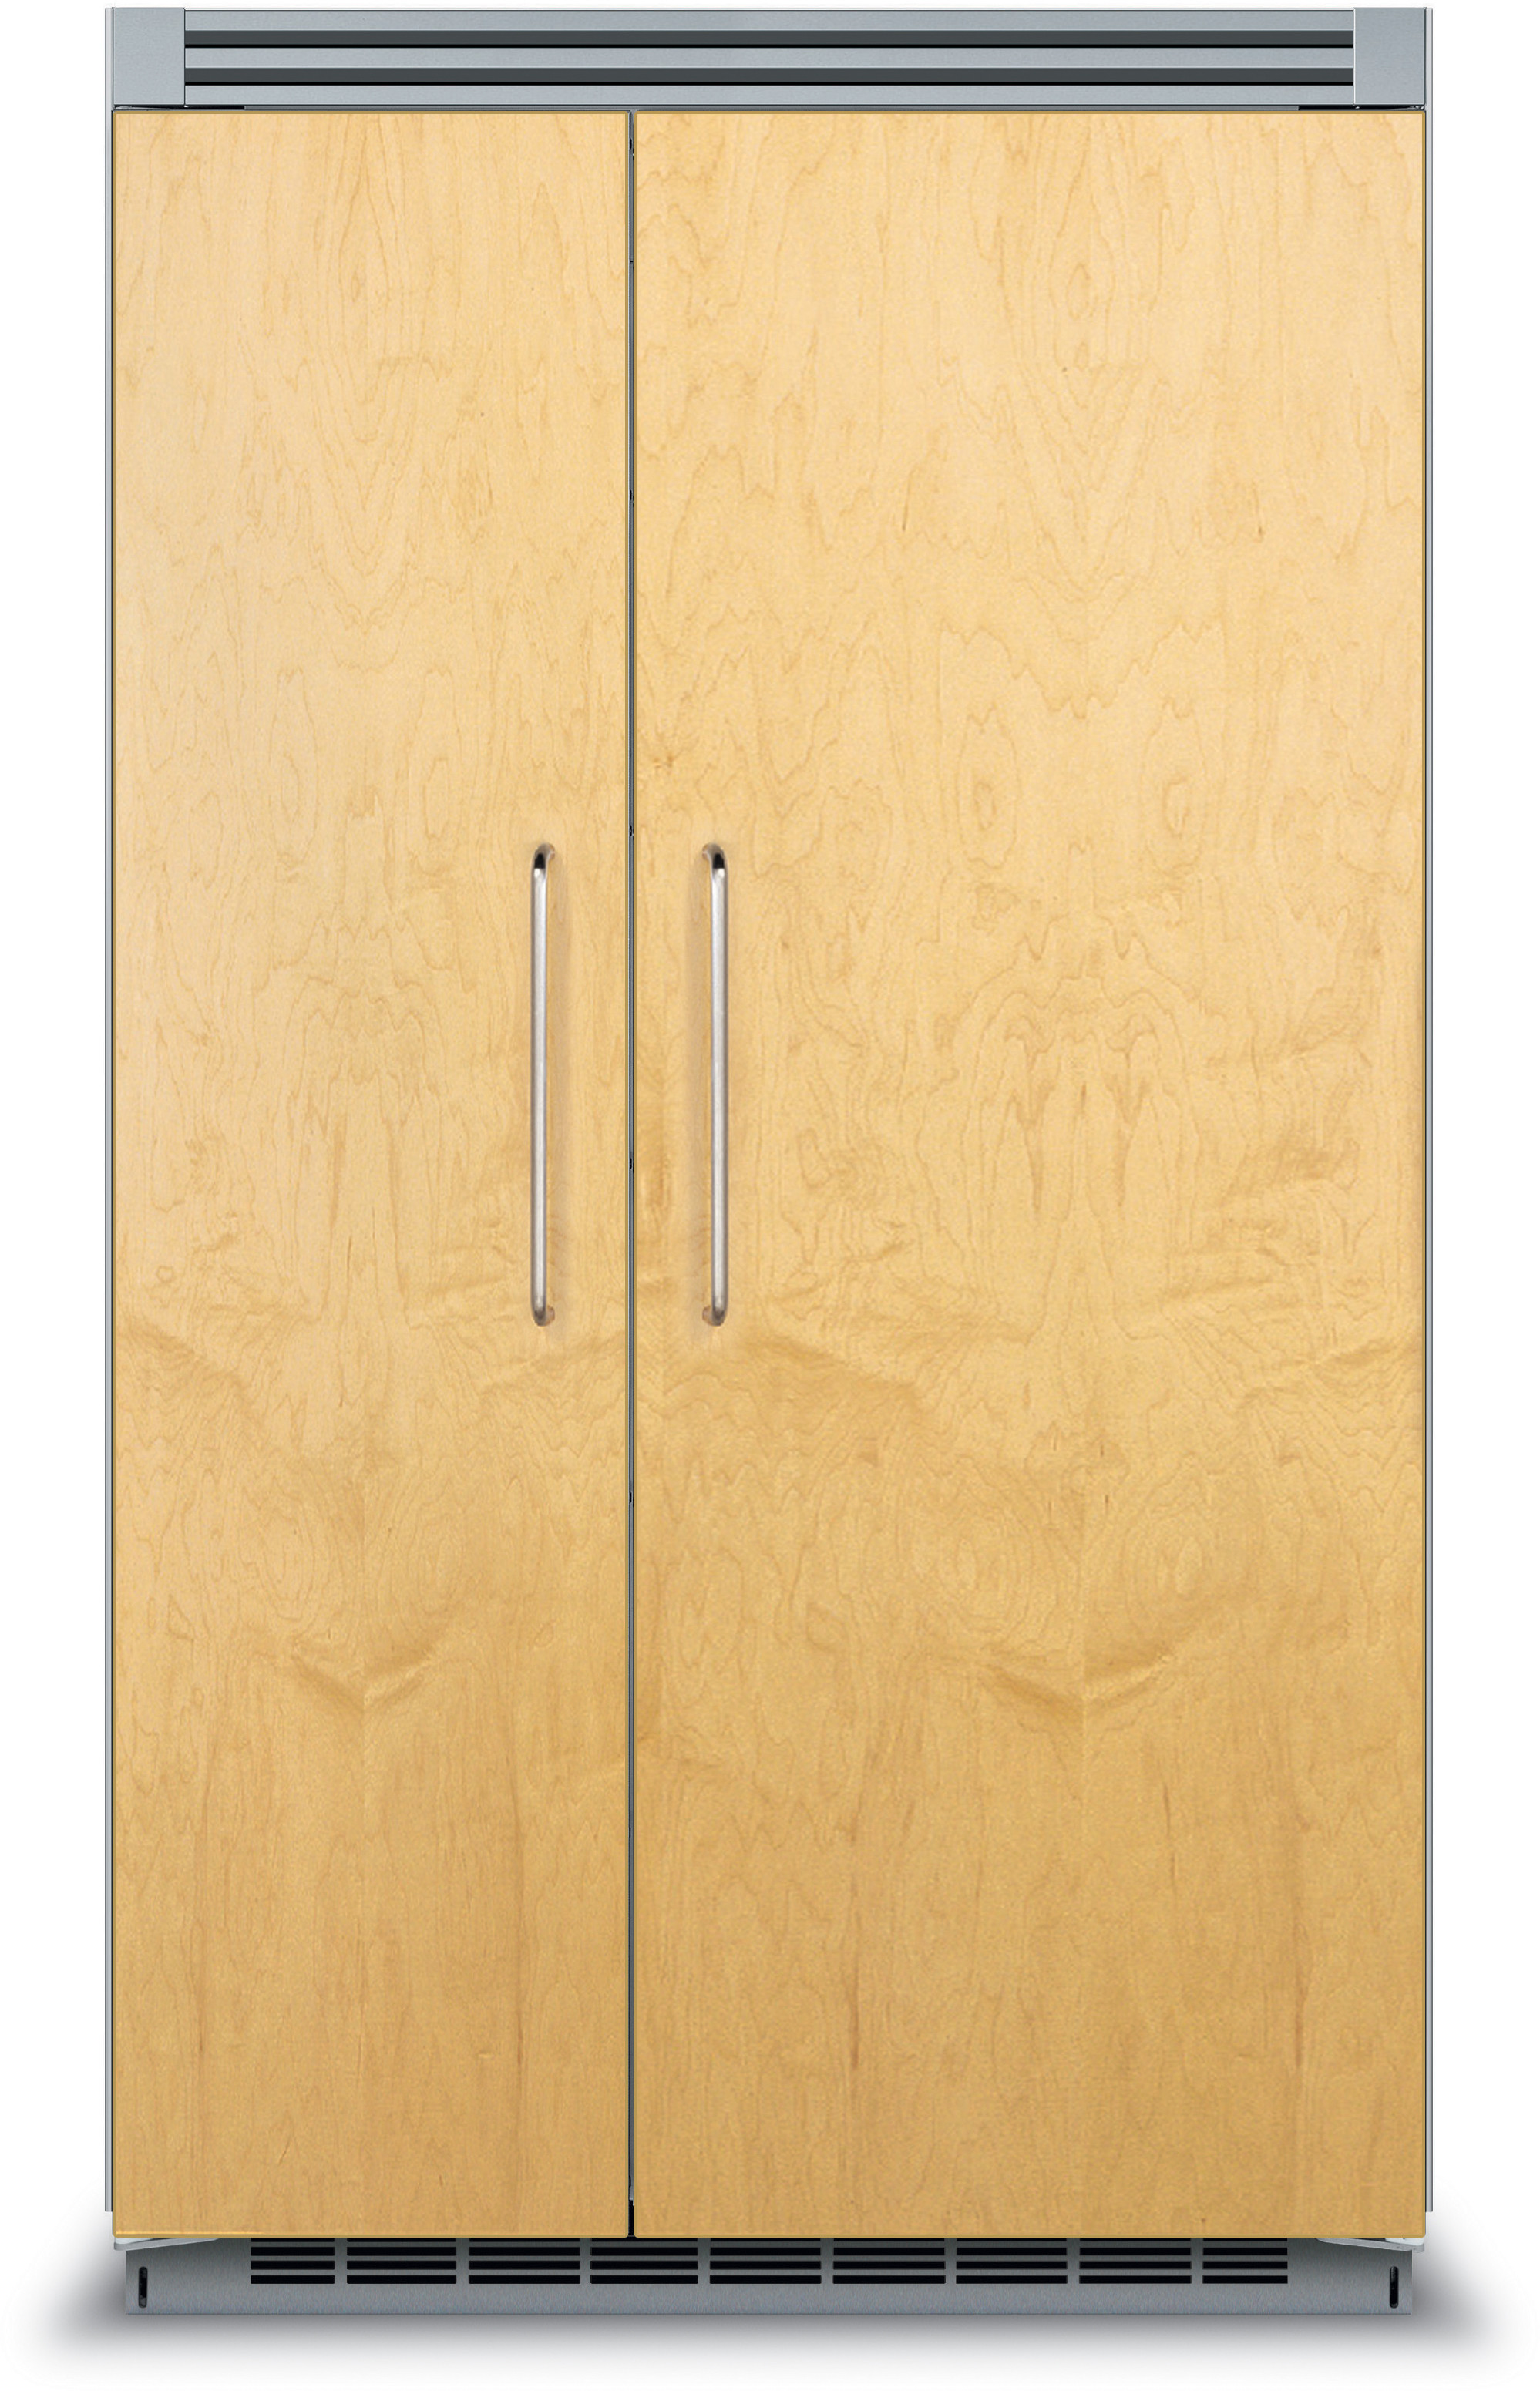 Panel Ready Refrigerators - Integrated & Custom | AJ Madison